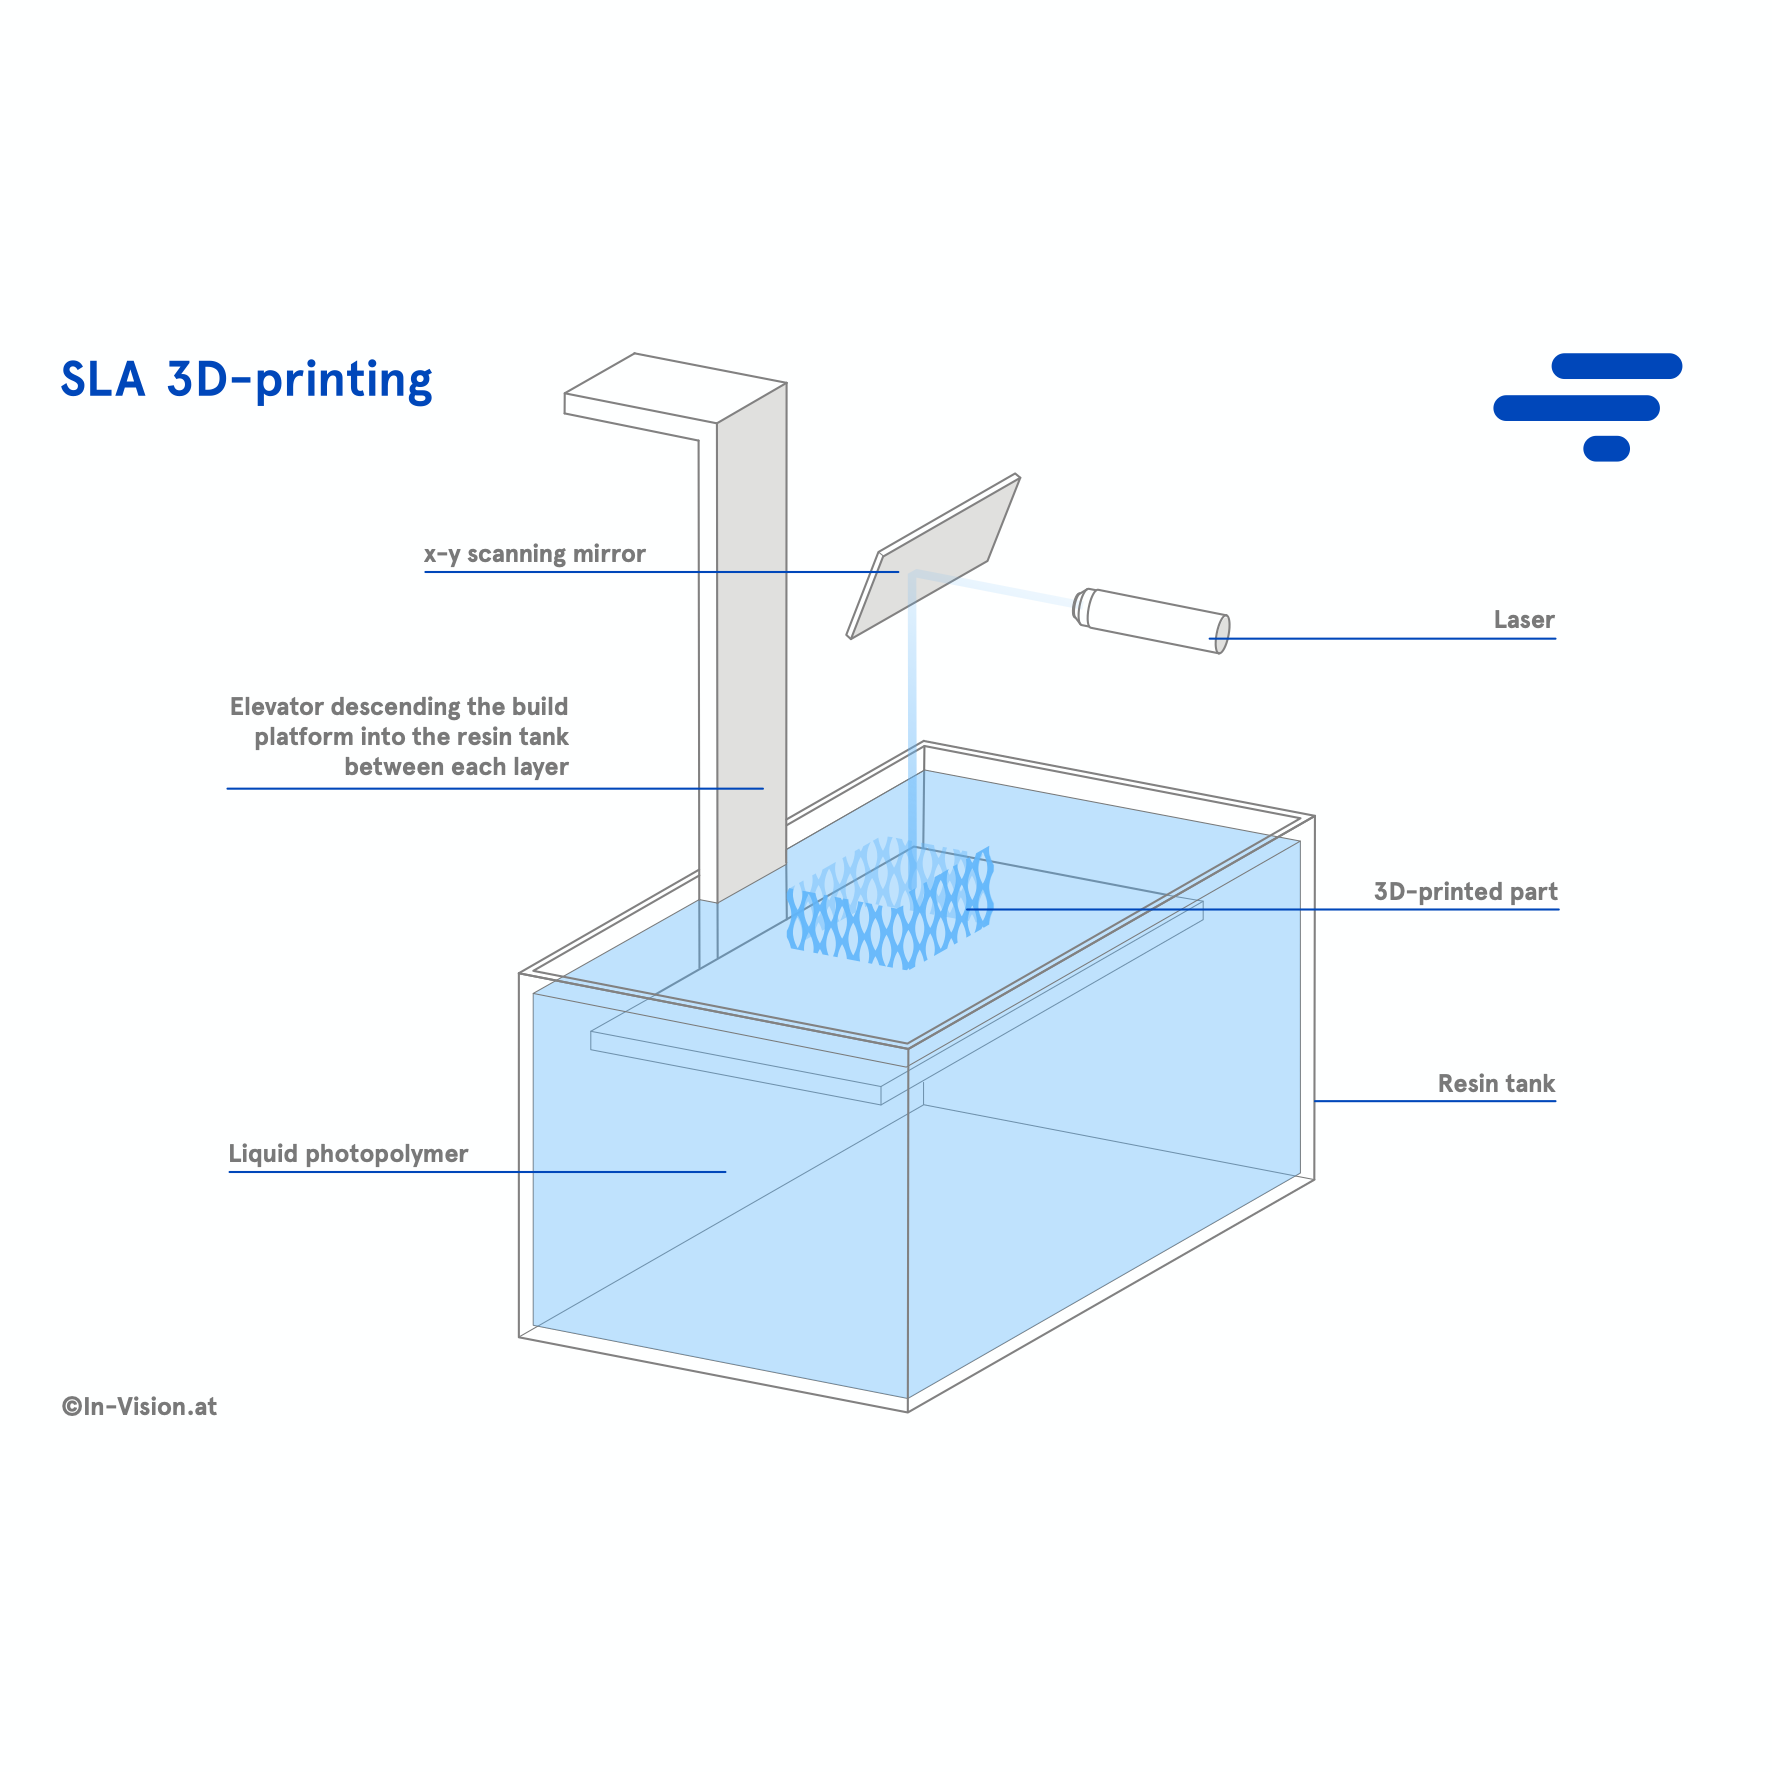 Basic principle of SLA 3D-printing. A laser scans the build area and cures each layer point by point.